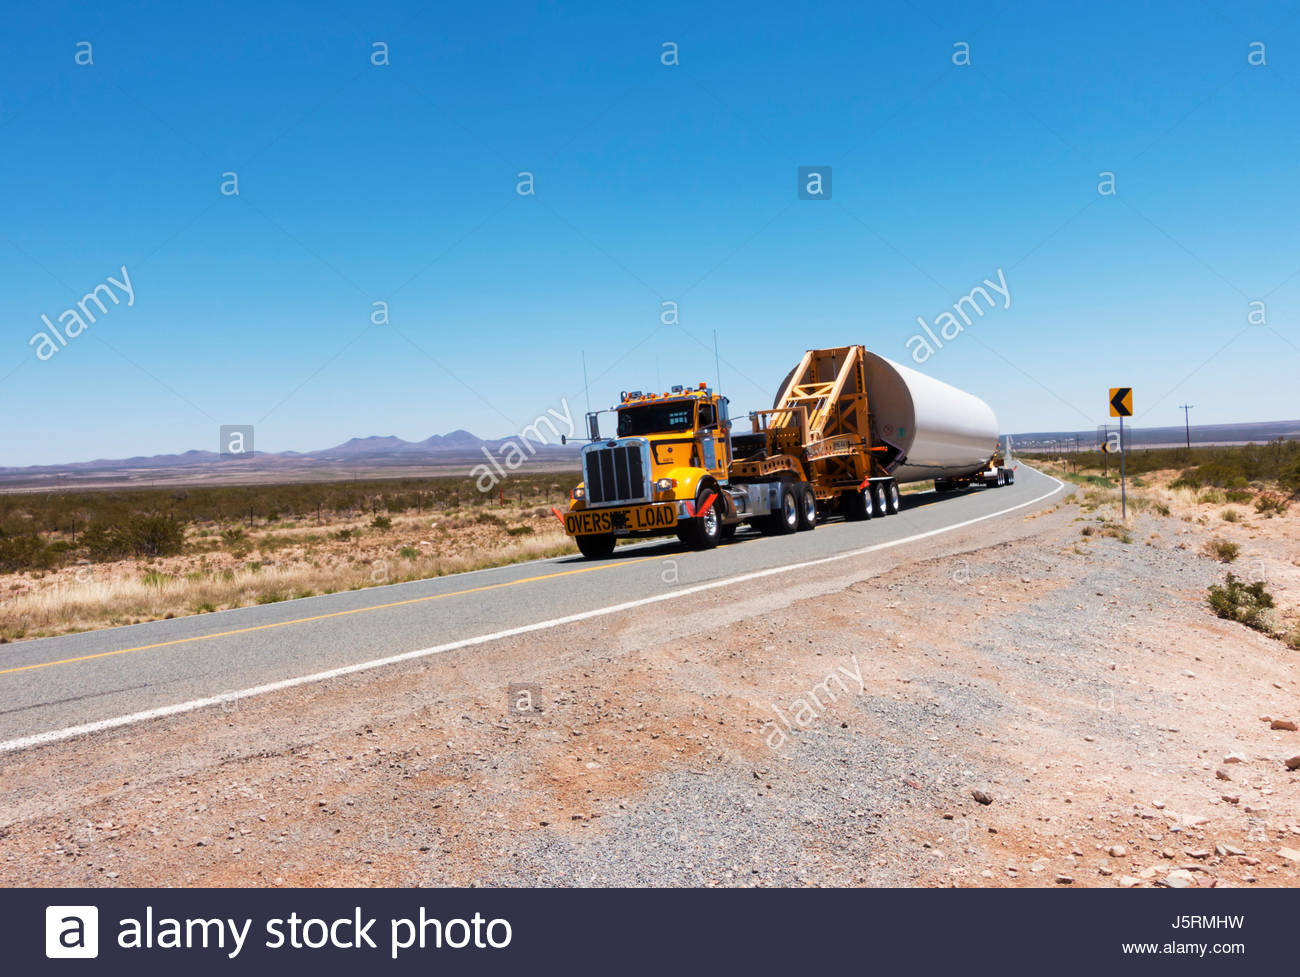 truck-tractor-pulling-oversize-load-prob